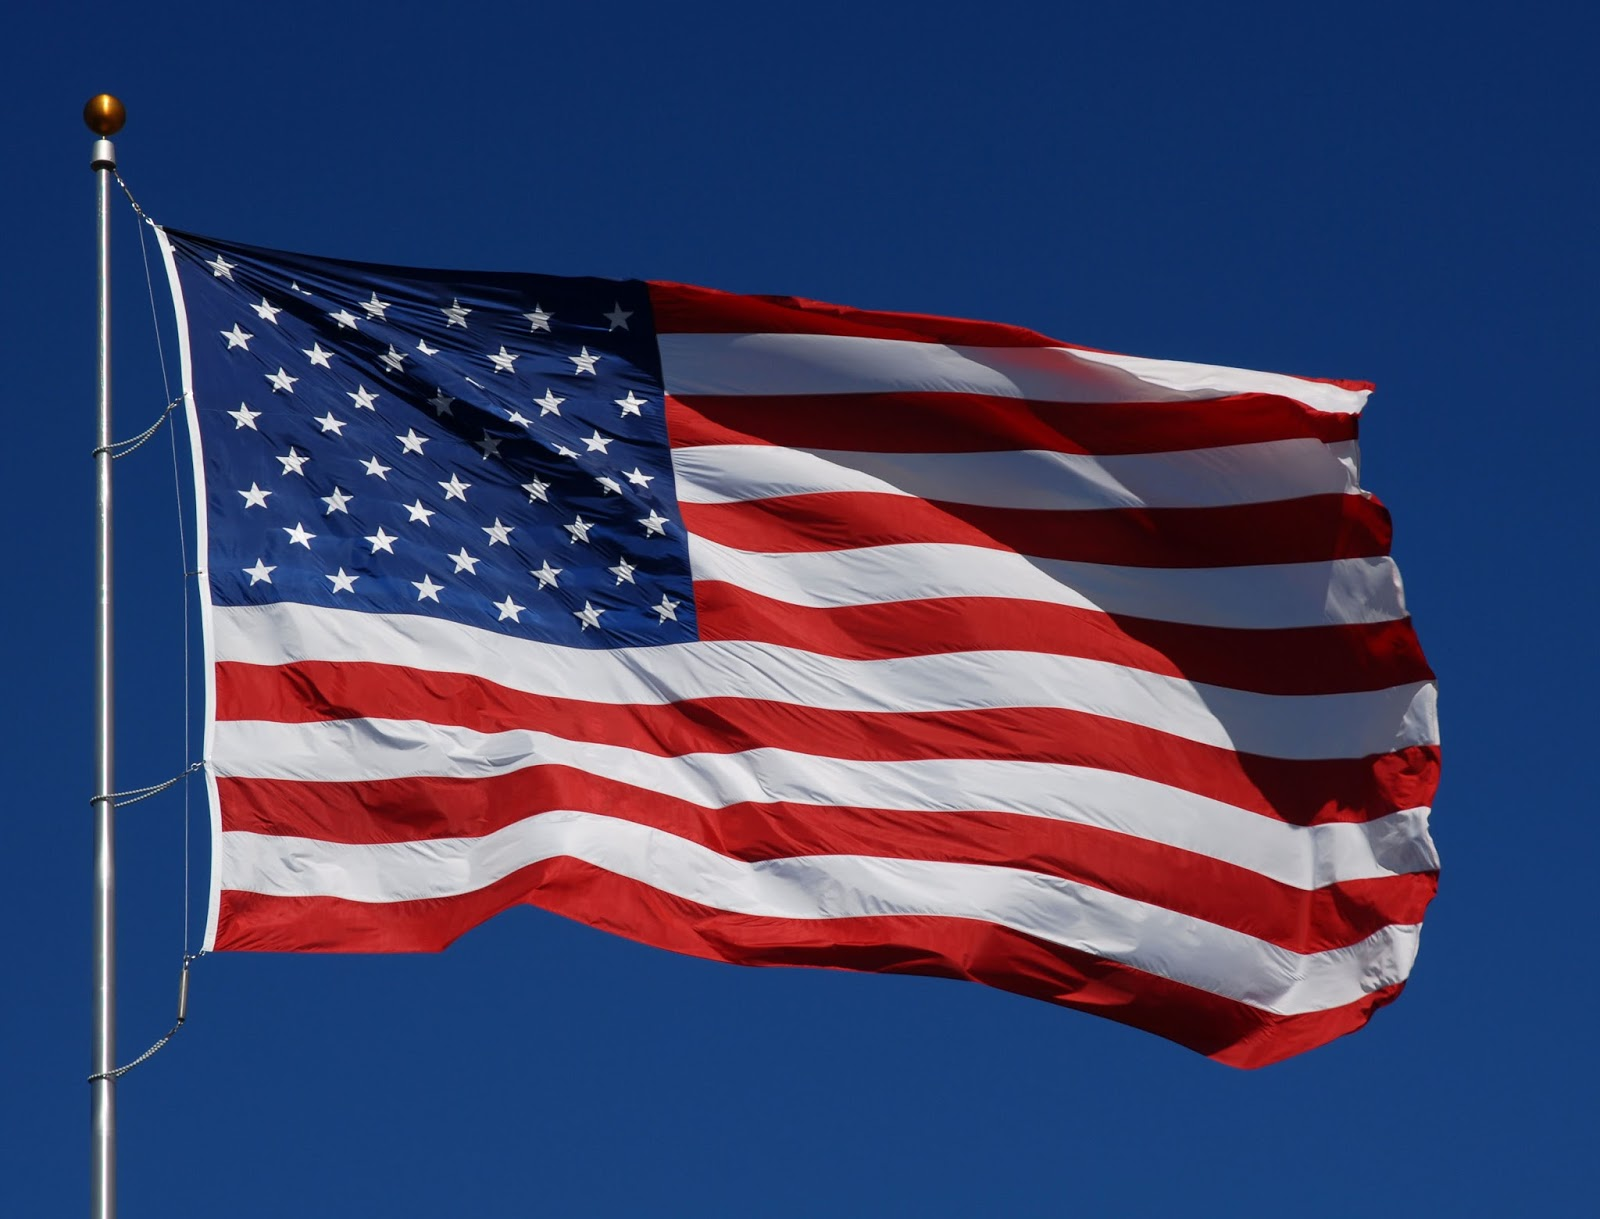 American flag hd wallpapers Hd usa